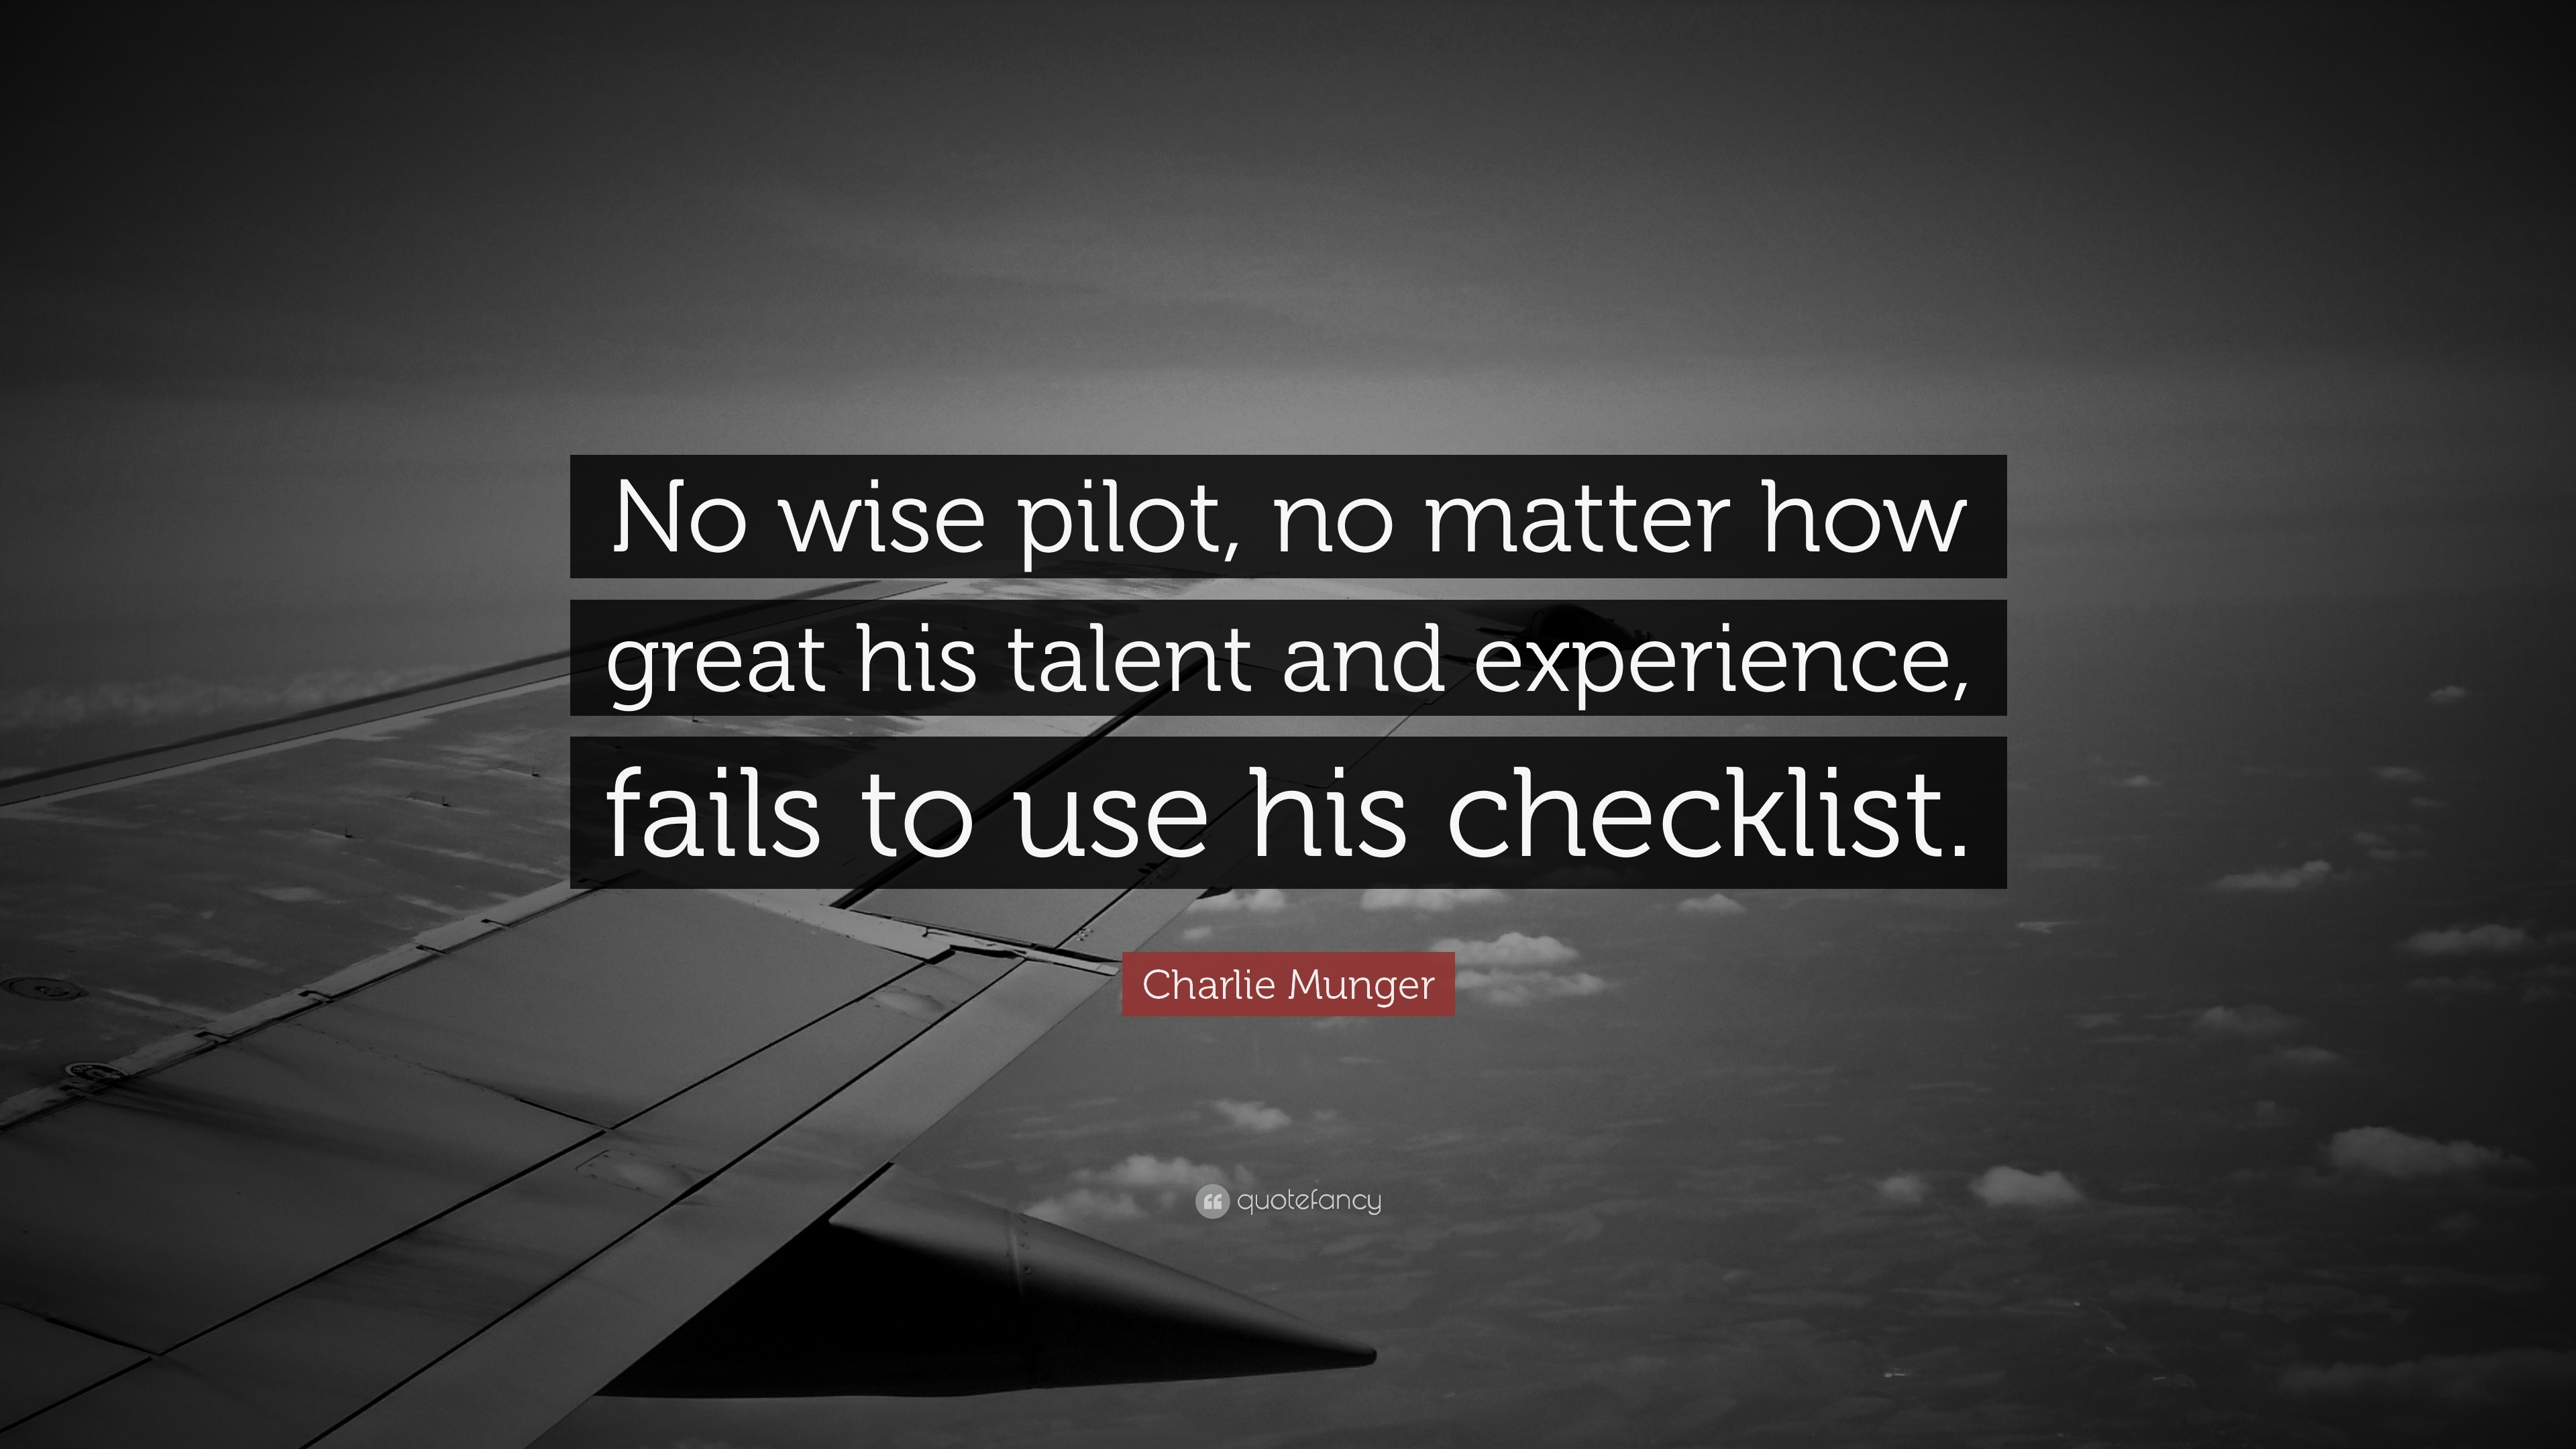 Benjamin Franklin Quotes Wallpaper Charlie Munger Quote No Wise Pilot No Matter How Great